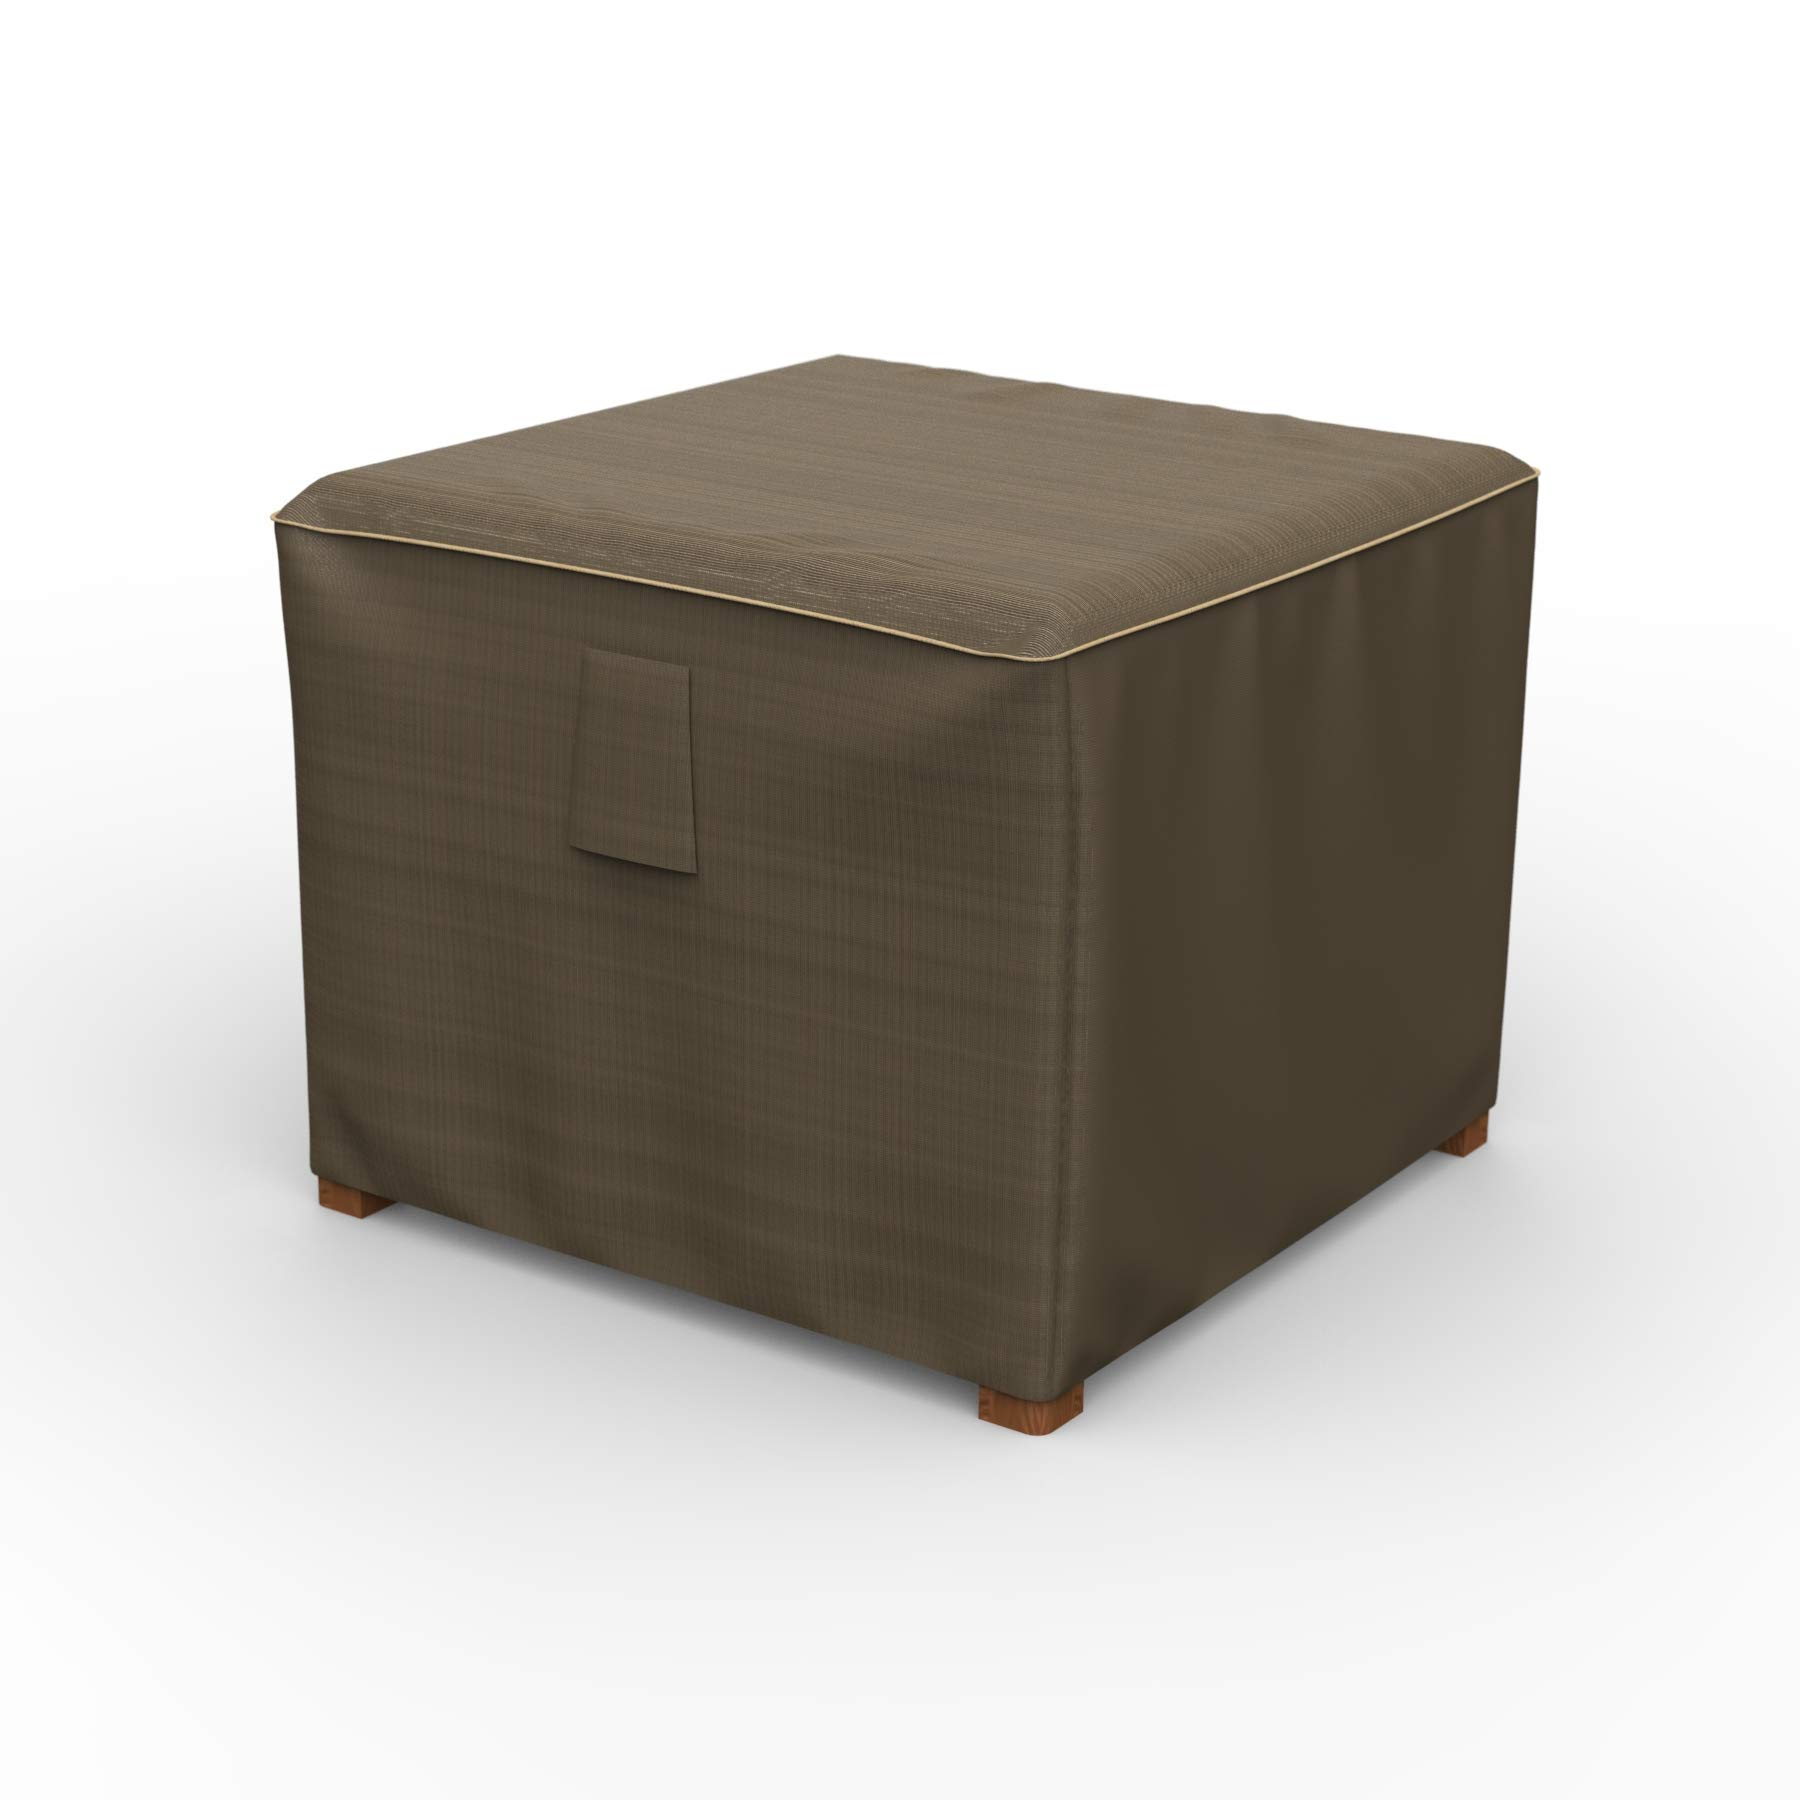 26'' NeverWet Platinum Square Patio Table Cover/Ottoman Cover, Medium (Black and Tan Weave)